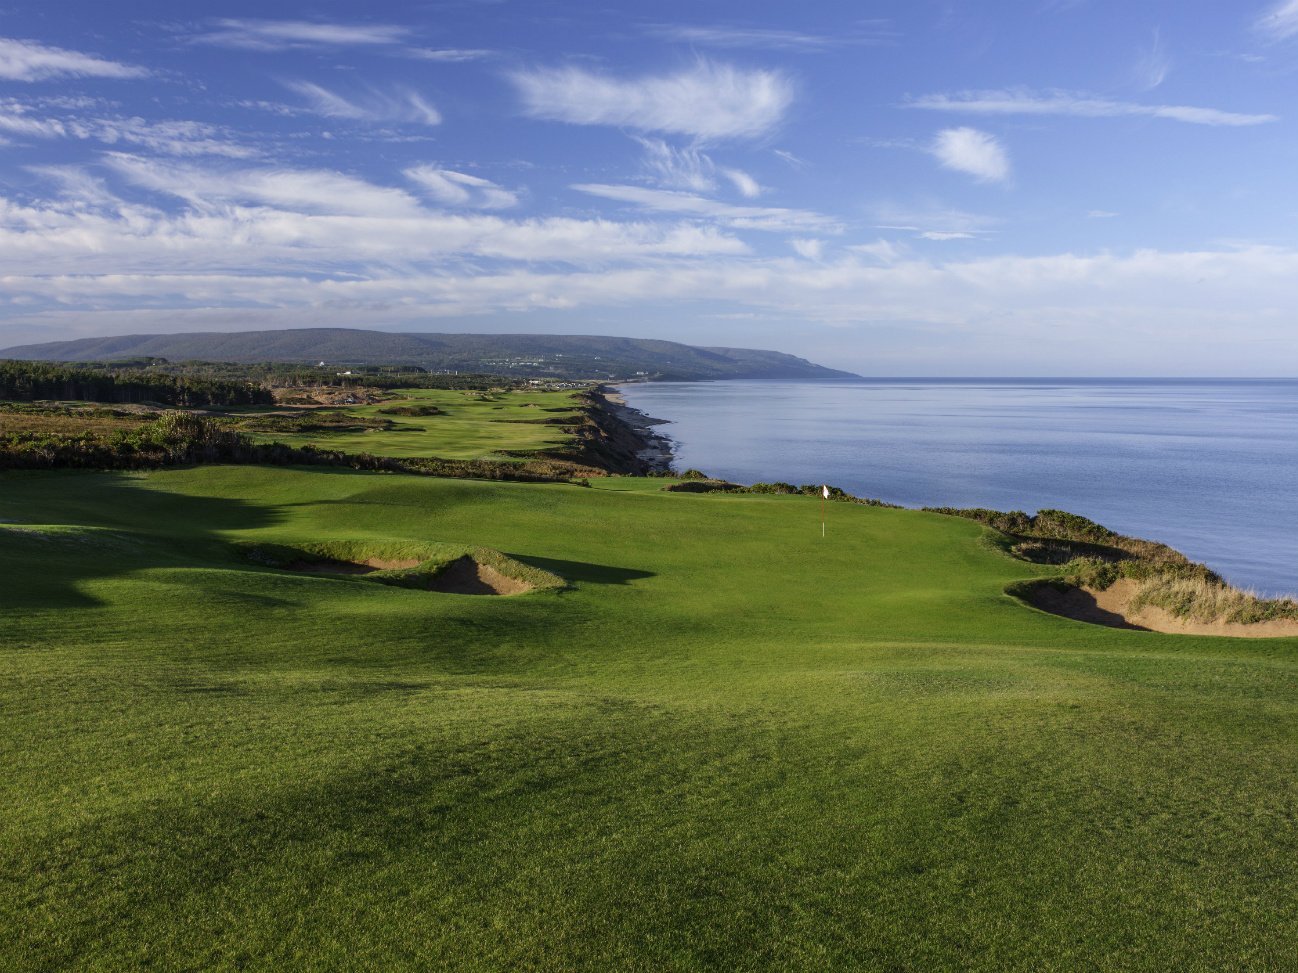 The new Cabot Cliffs course in Cape Breton, Nova Scotia is one of the top layouts in North America.